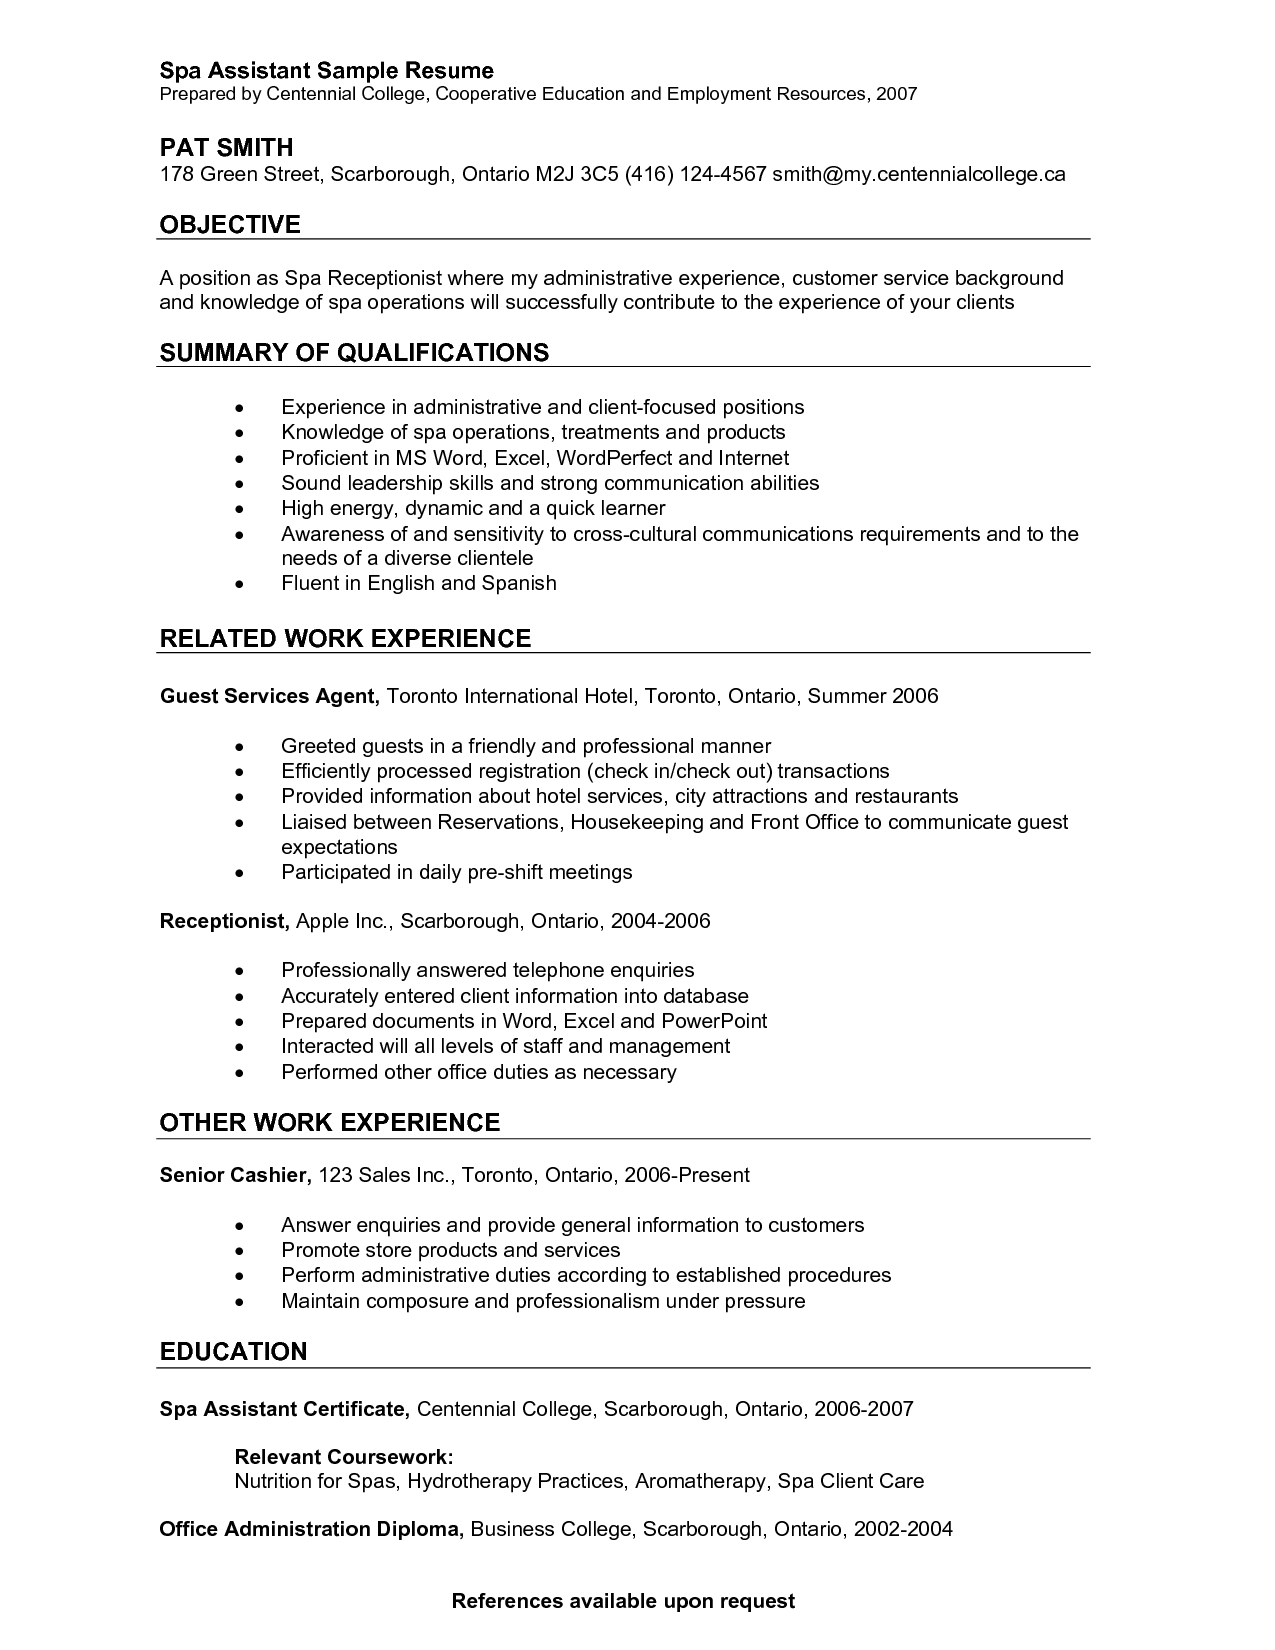 Medical Receptionist Resume Objective Samples | resume | Pinterest